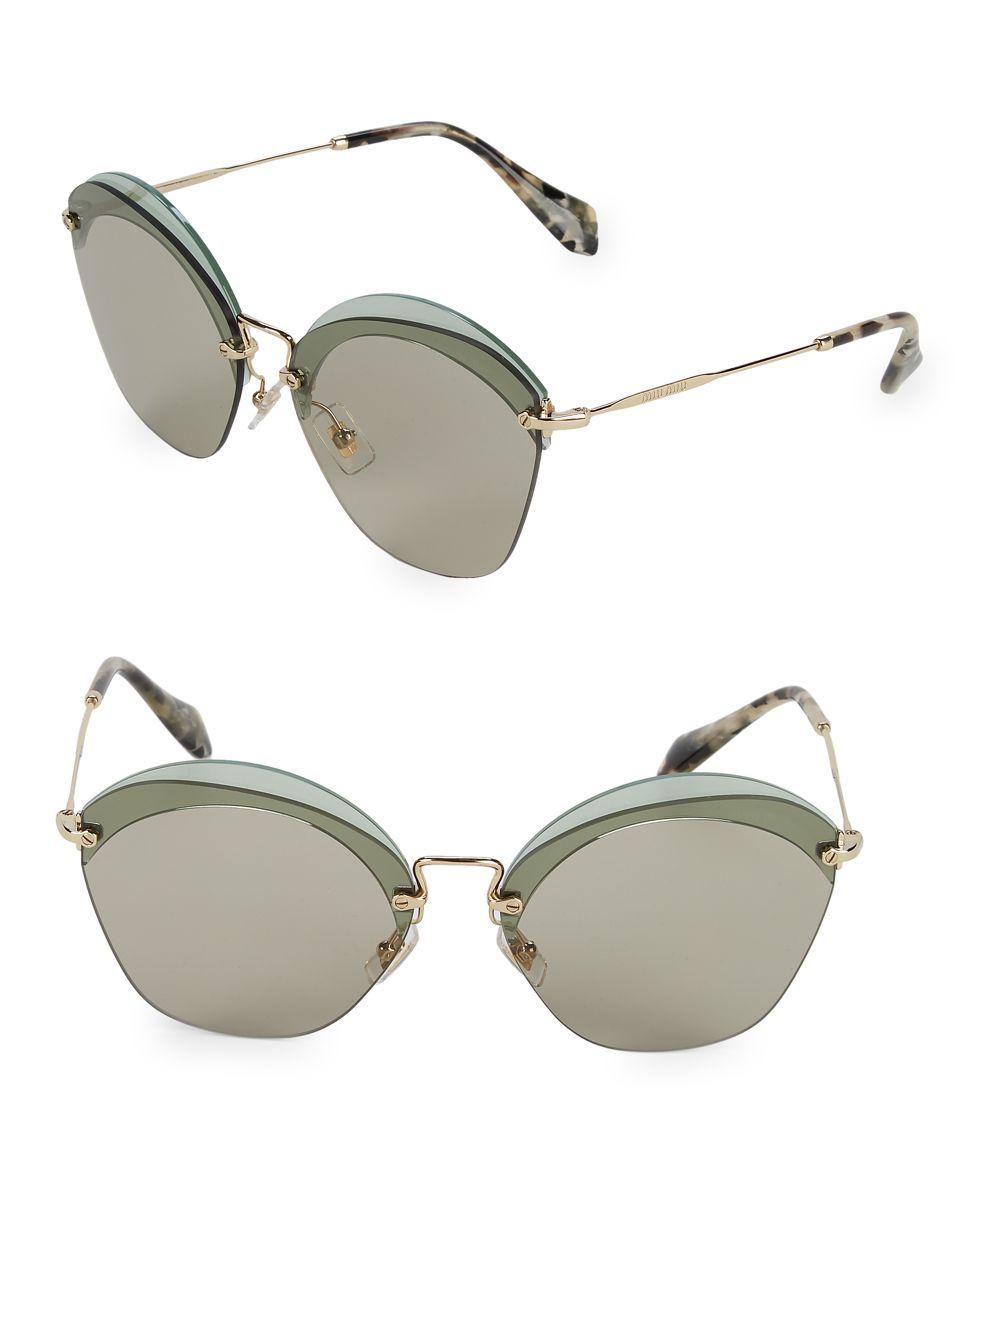 0668f6d42576 Lyst - Miu Miu Cut-out 62mm Cateye Sunglasses